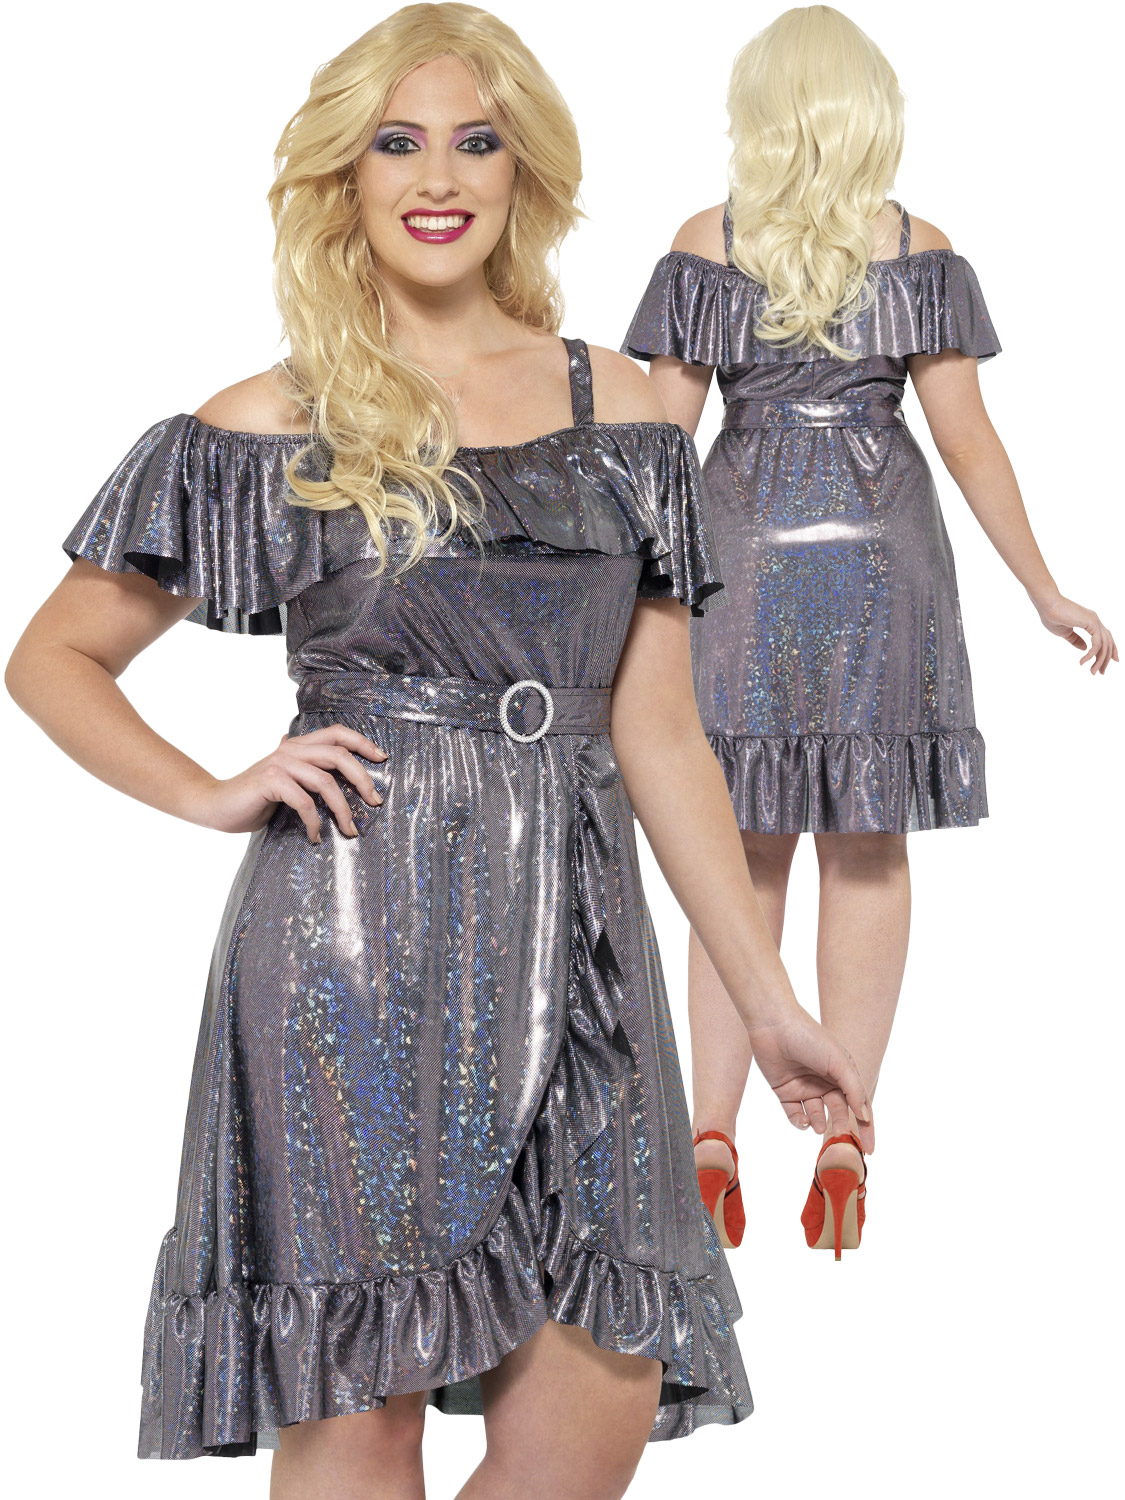 Details about Ladies Plus Size Disco Diva Costume 70s 80s Fancy Dress  Womens Size 16-30 Curves